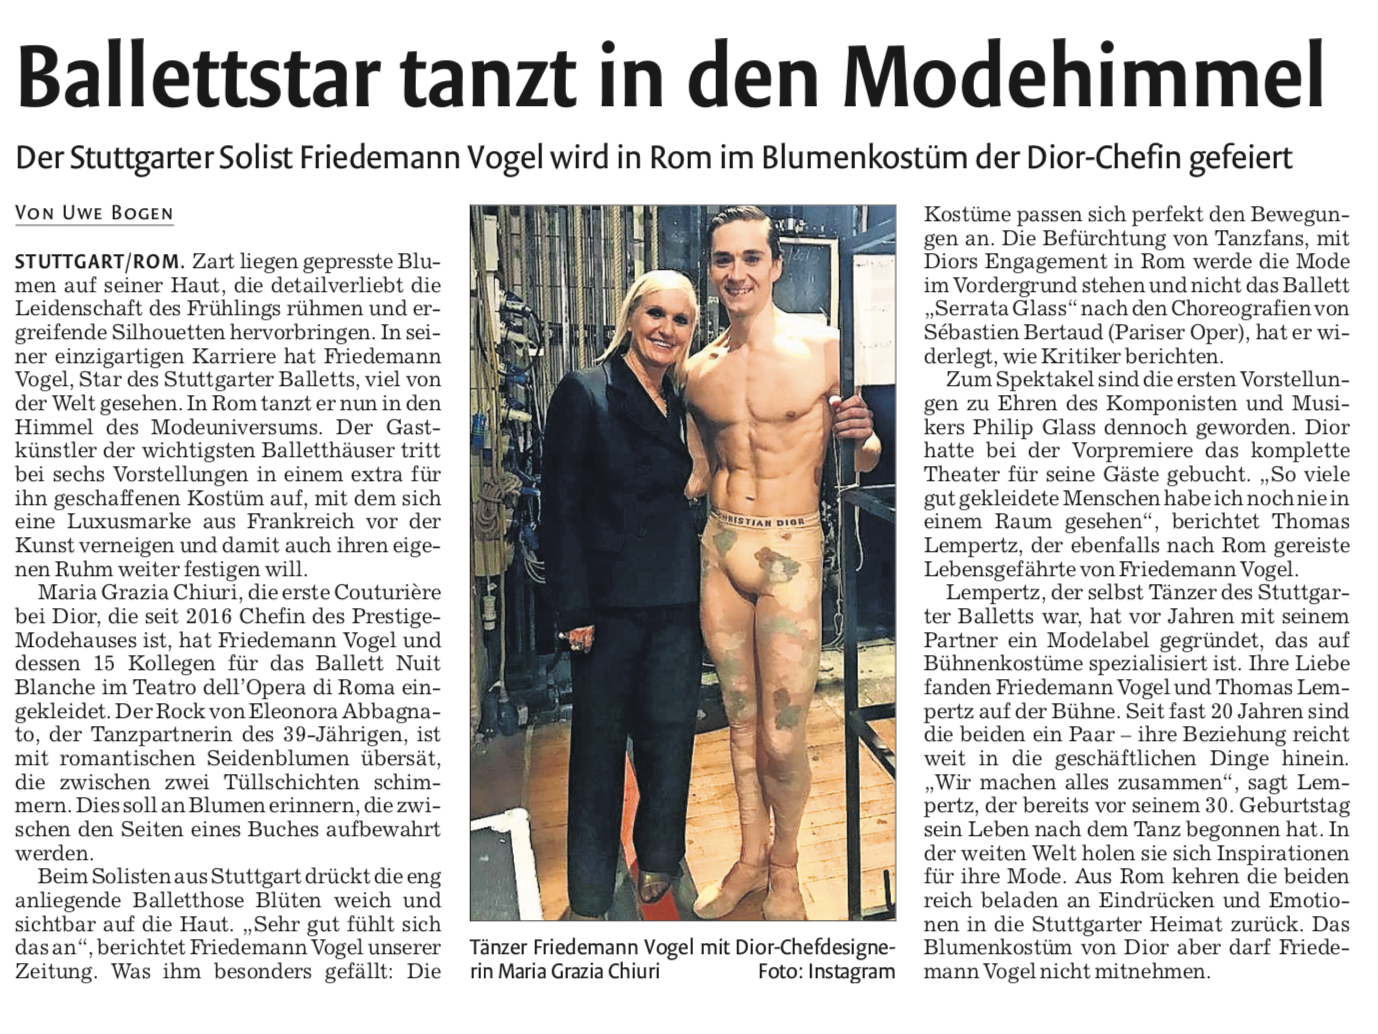 The world renowned dancer speaks to  Stuttgarter Zeitung  about performing in a costume specially designed for him by Maria Grazia Chiuri of Christian Dior for the world premiere of  Nuit Blanche  by Sébastien Bertaud.